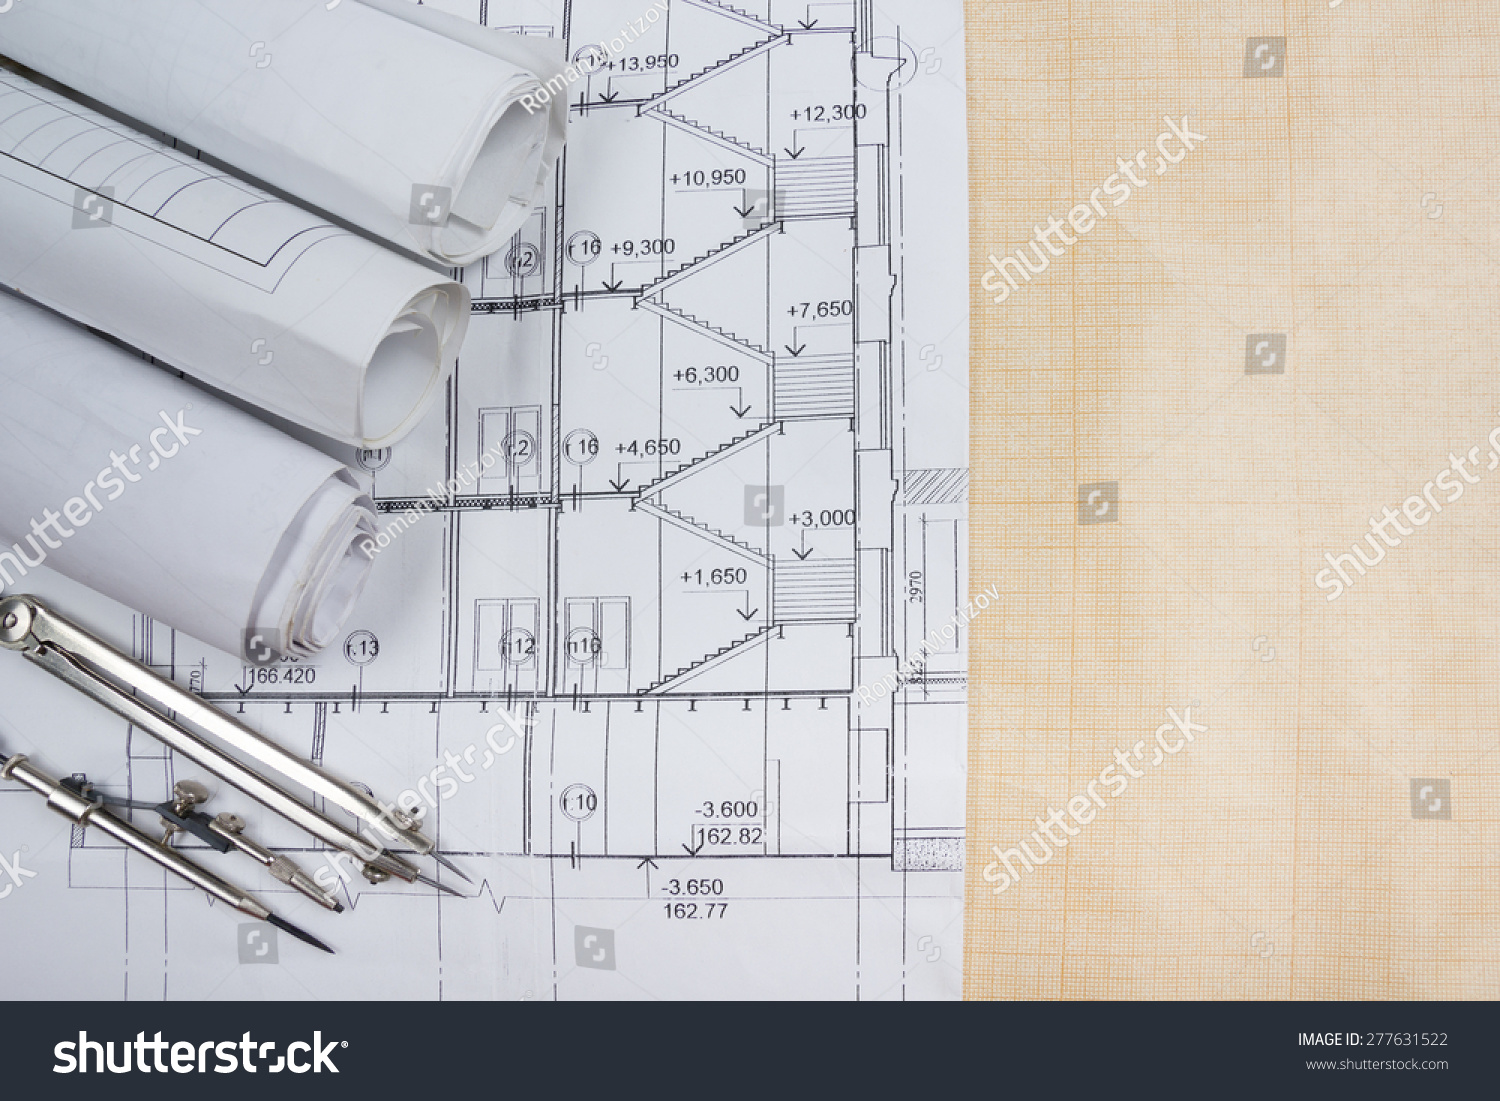 Architectural project blueprints blueprint rolls compass stock architectural project blueprints blueprint rolls compass divider calculator white safety on malvernweather Image collections